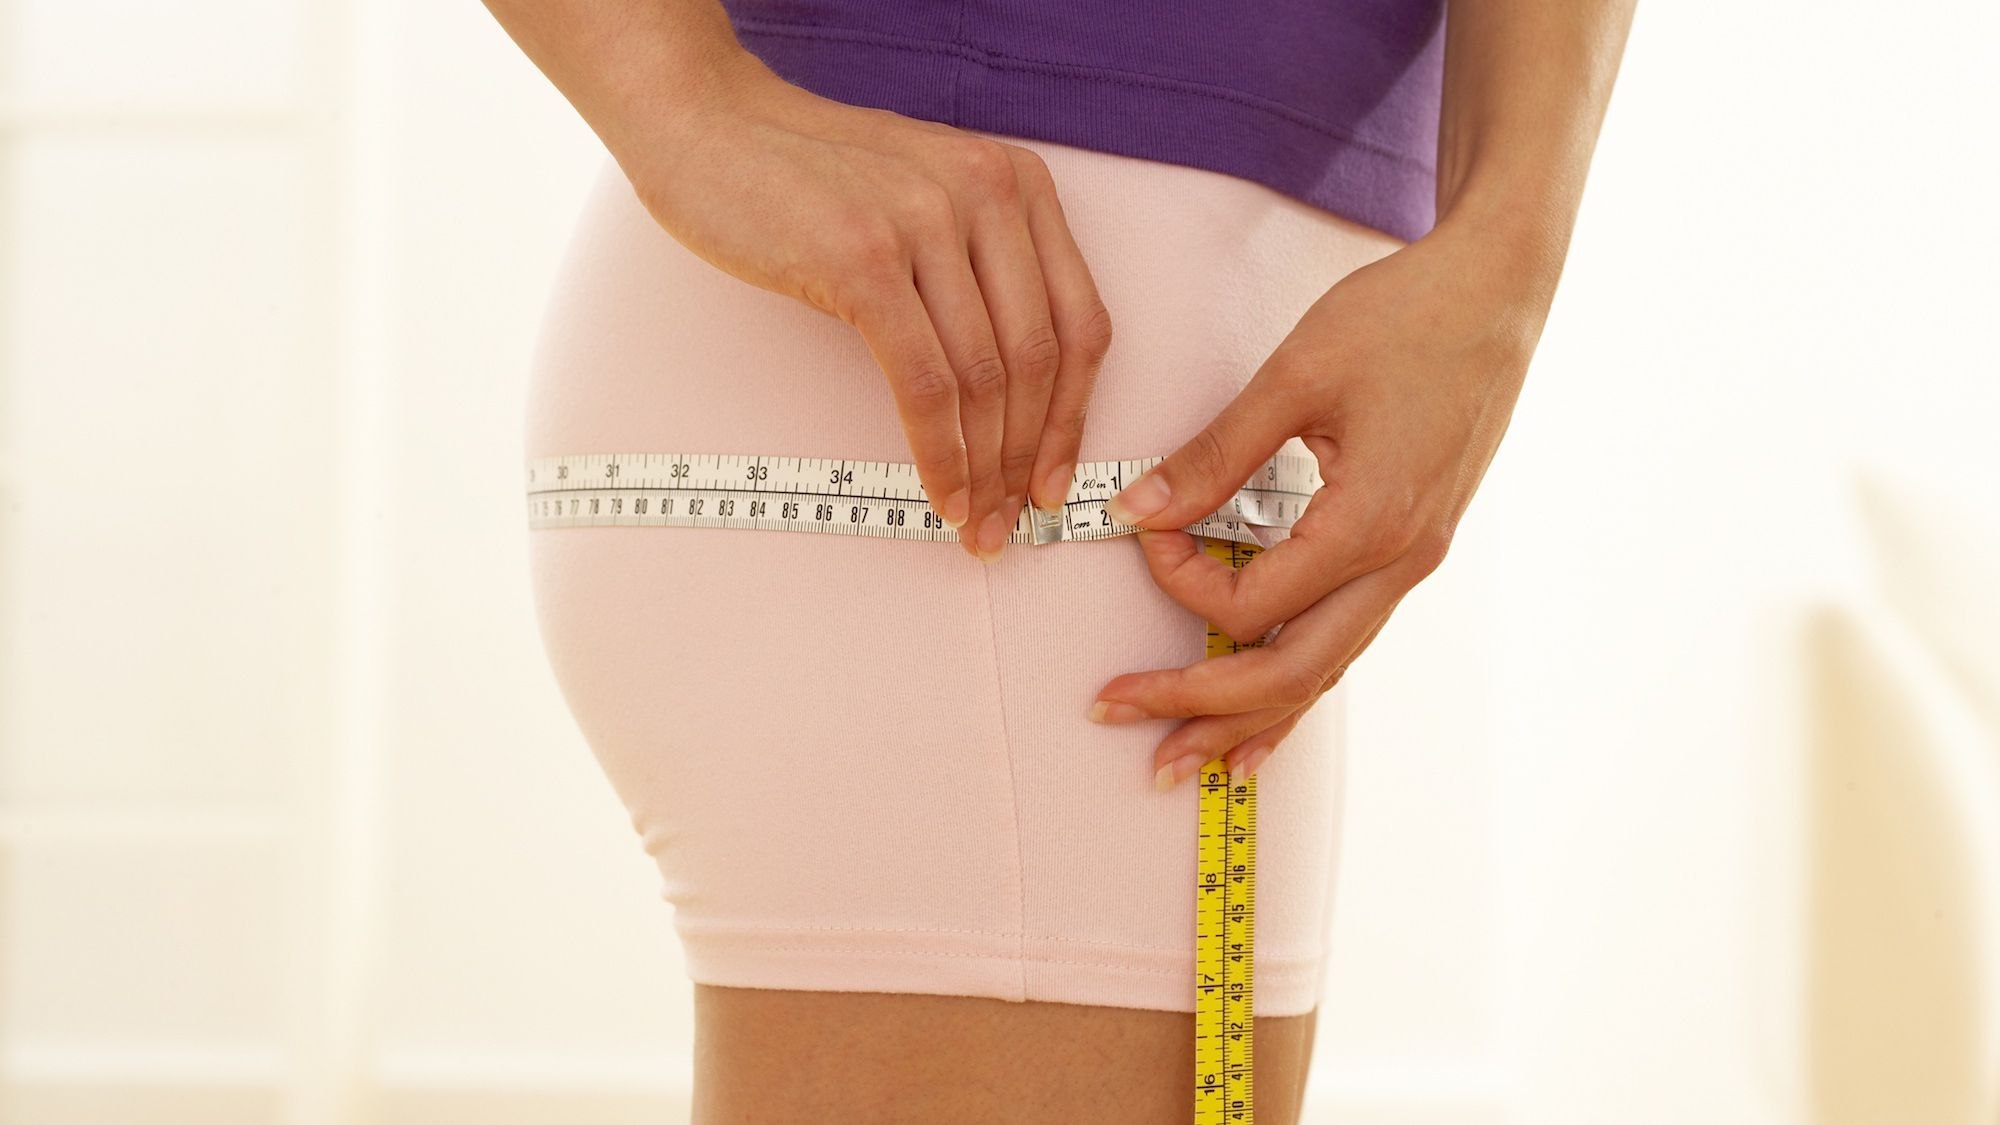 How To Calculate And Understand Your Waist To Hip Ratio